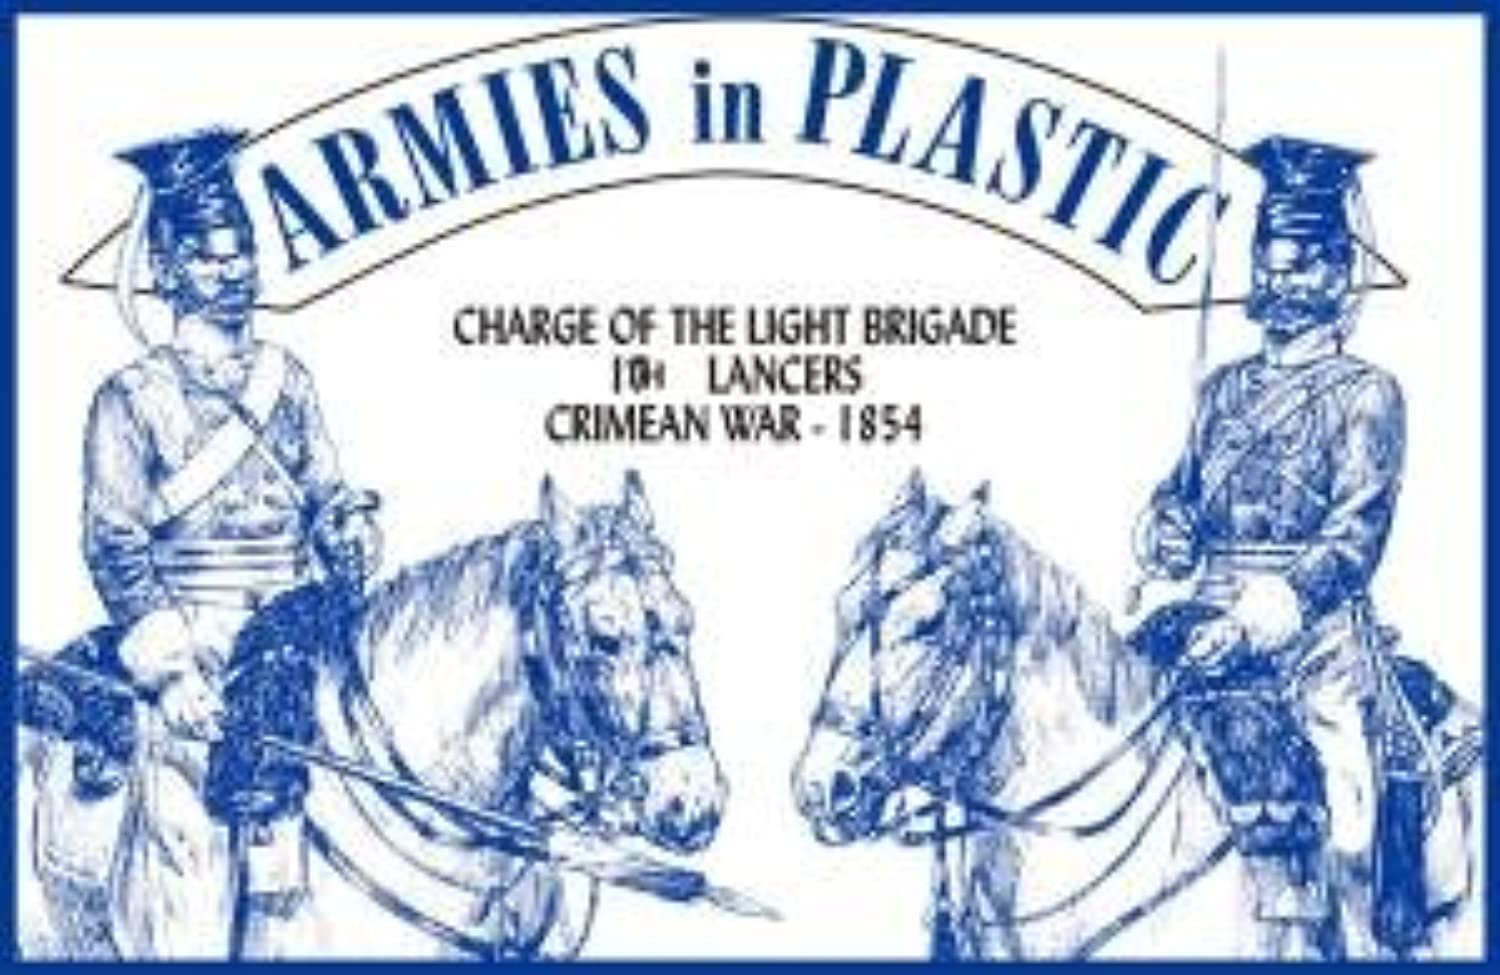 Crimean War 1854 17th Lancers Charge of the Light Brigade (5 Mounted) 1 32 Armies in Plastic